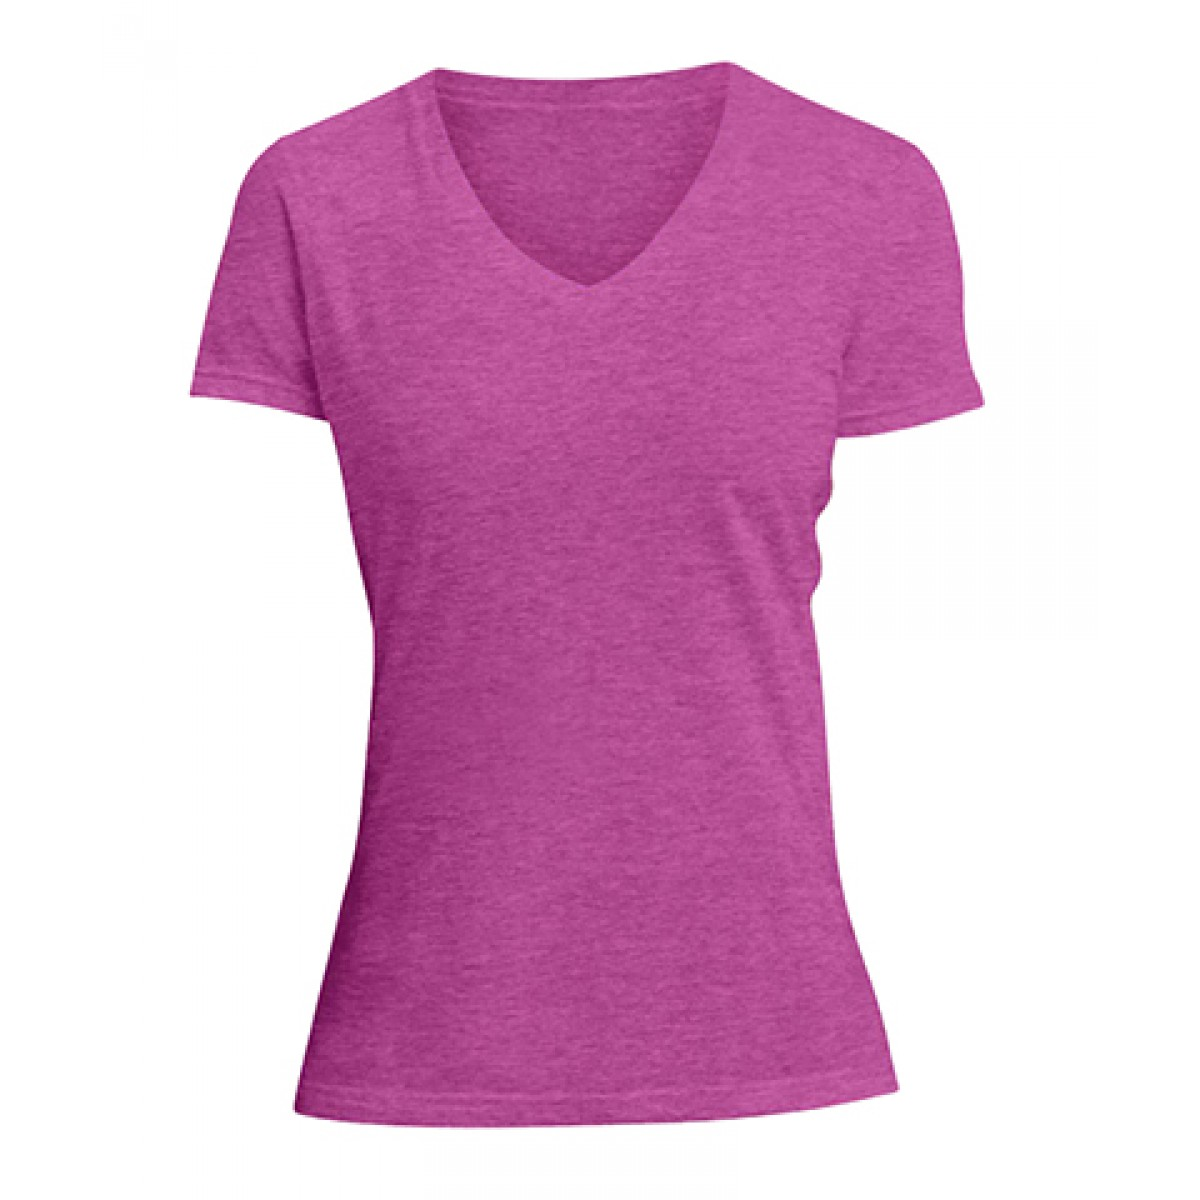 Ladies V-Neck Tee-Heathered Fuscia-S